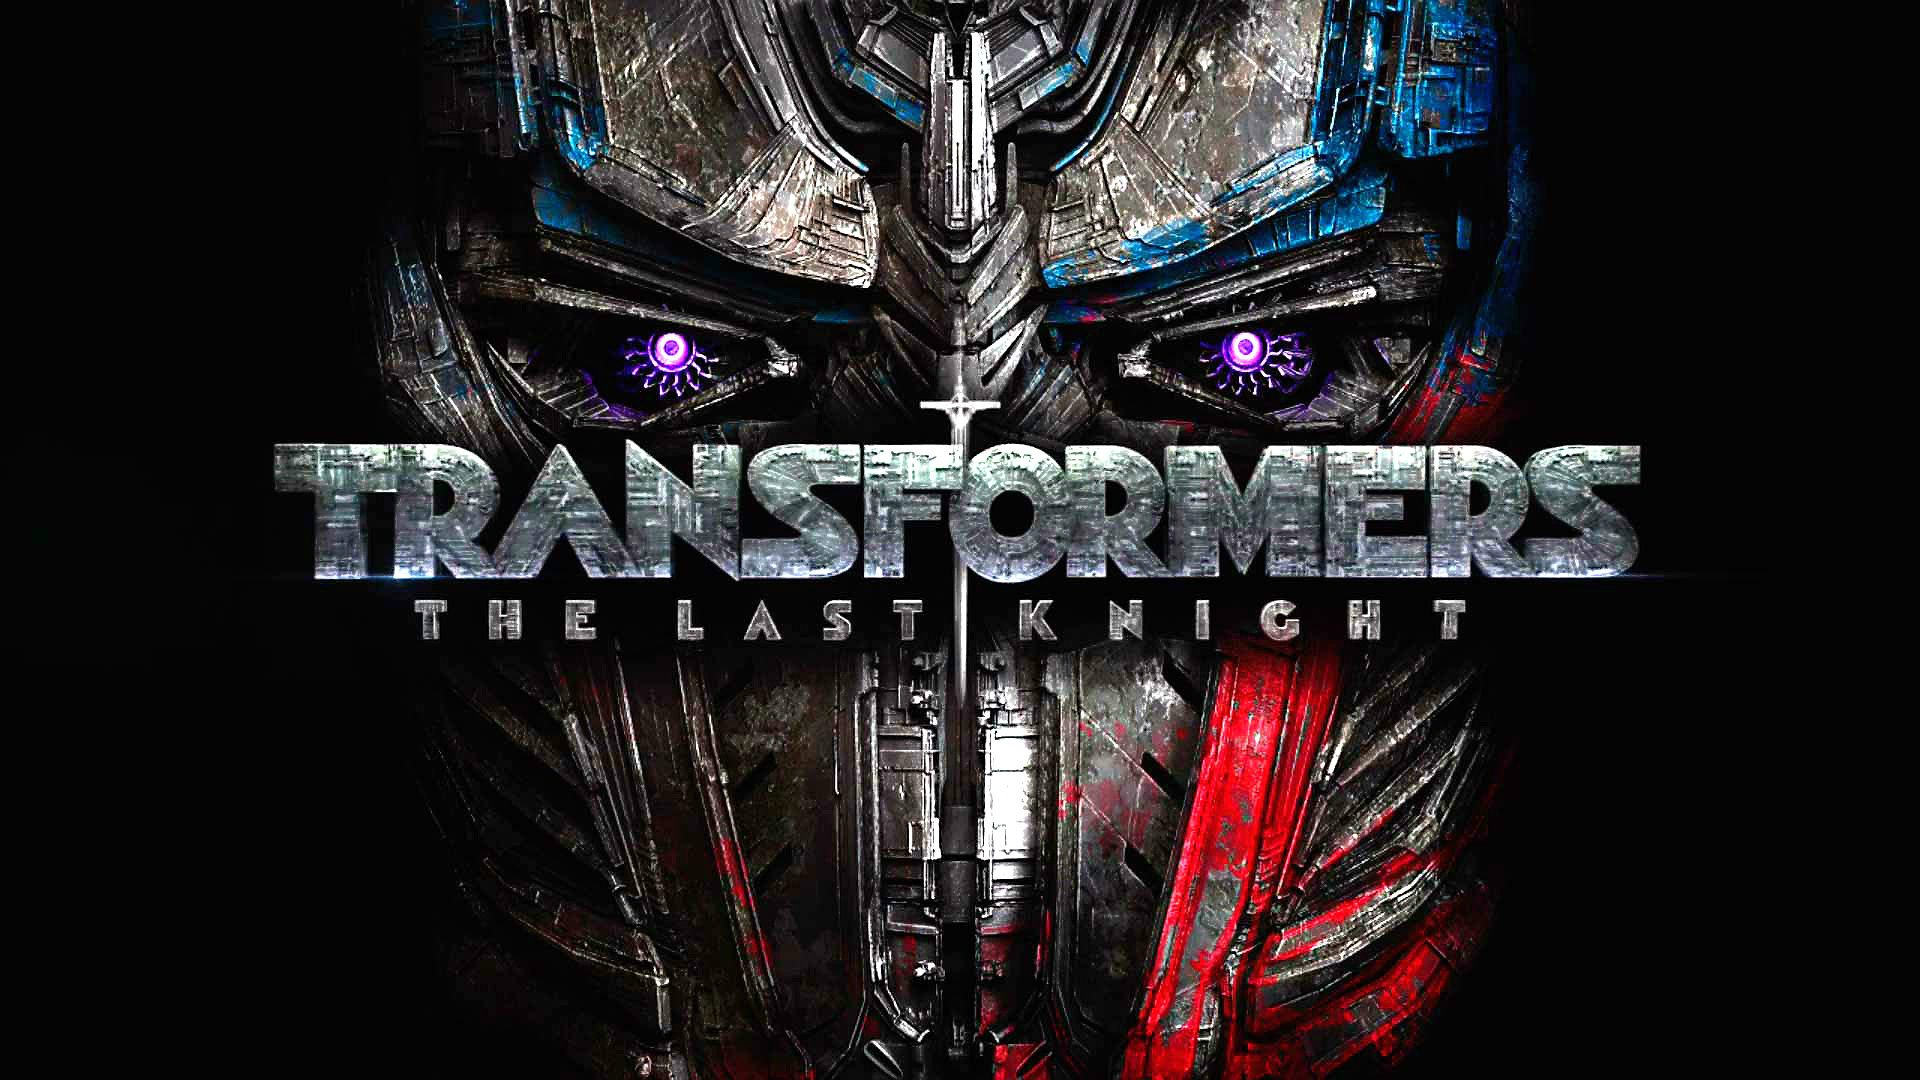 Theatrical releases transformers the last knight proof for A painted devil thomas cullinan book